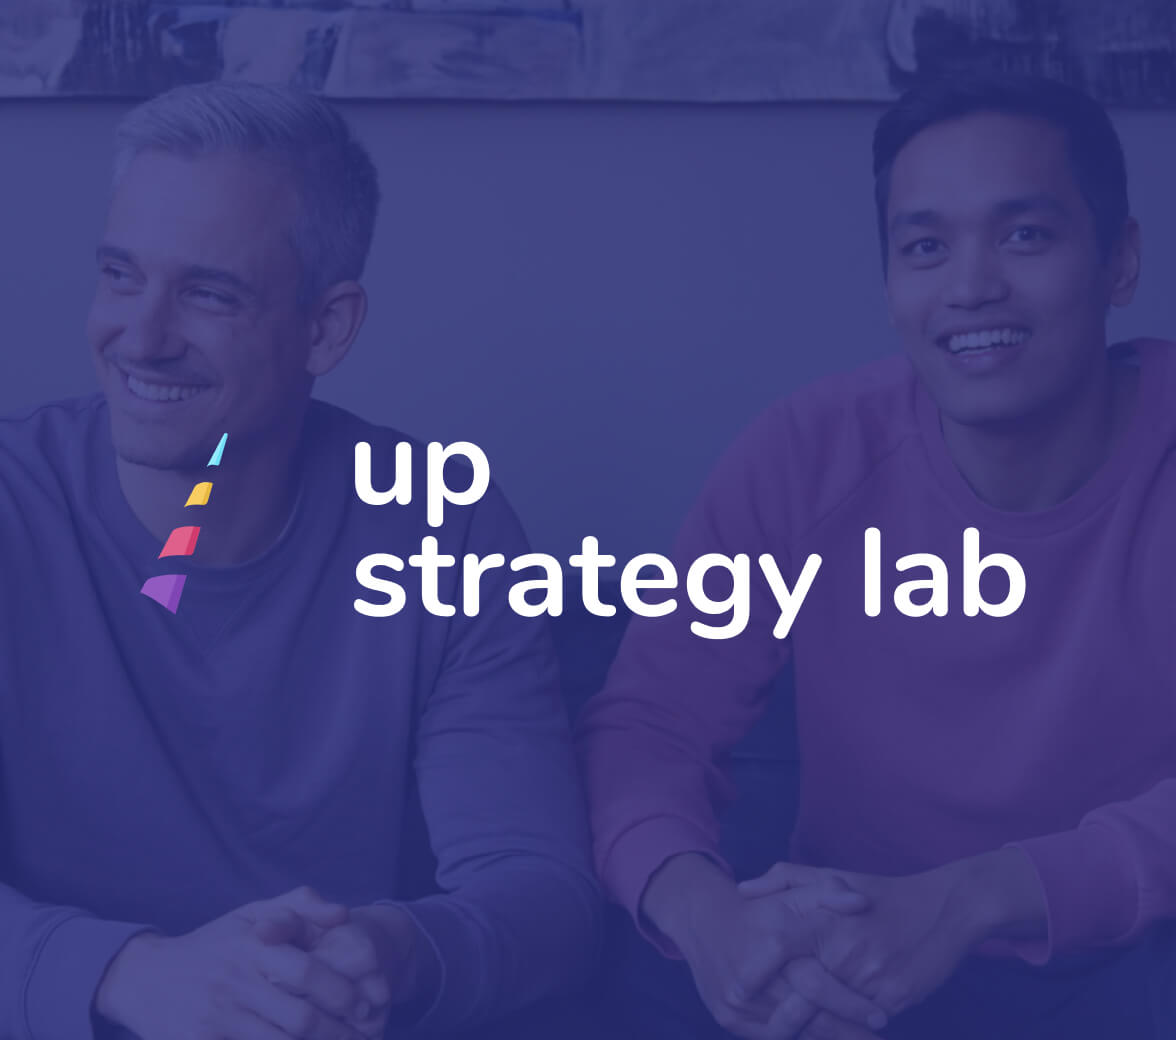 We have launched 🚀 a business laboratory to grow businesses 🦄